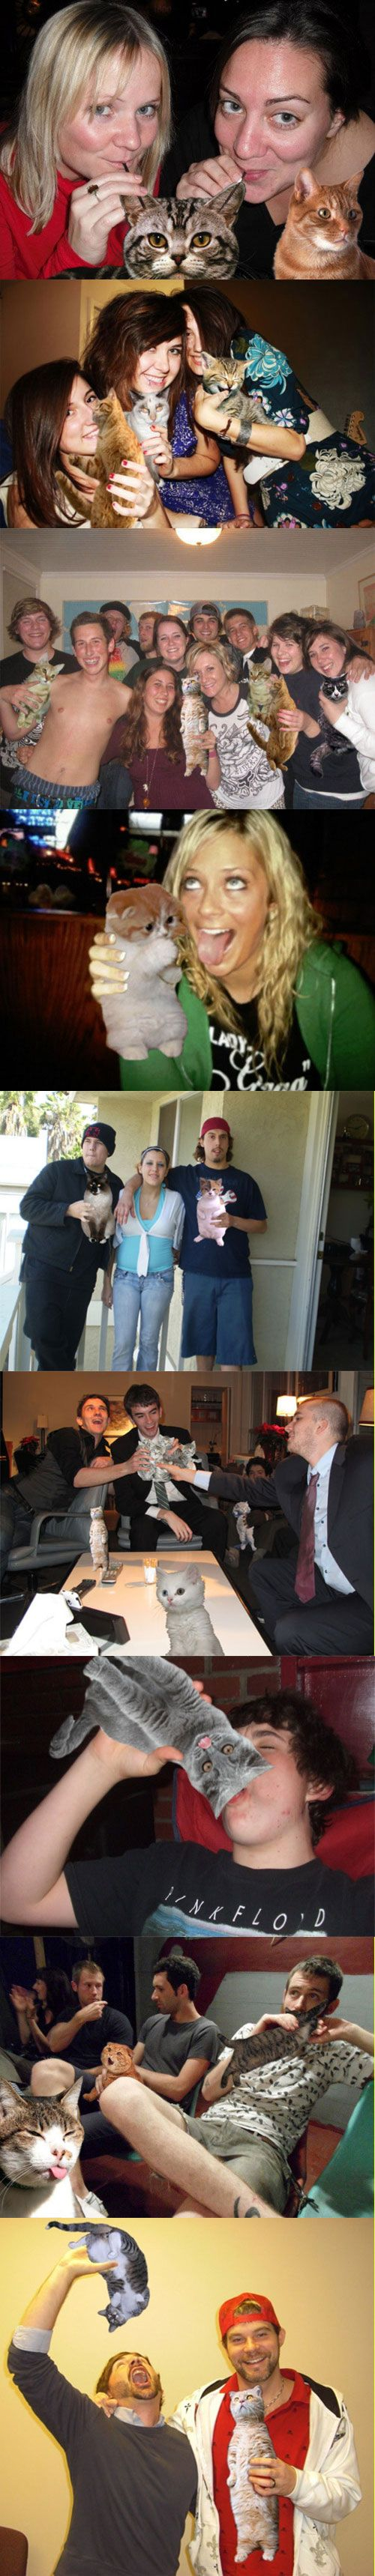 How to properly hide alcohol in your Facebook pictures. This might be the funniest thing ever